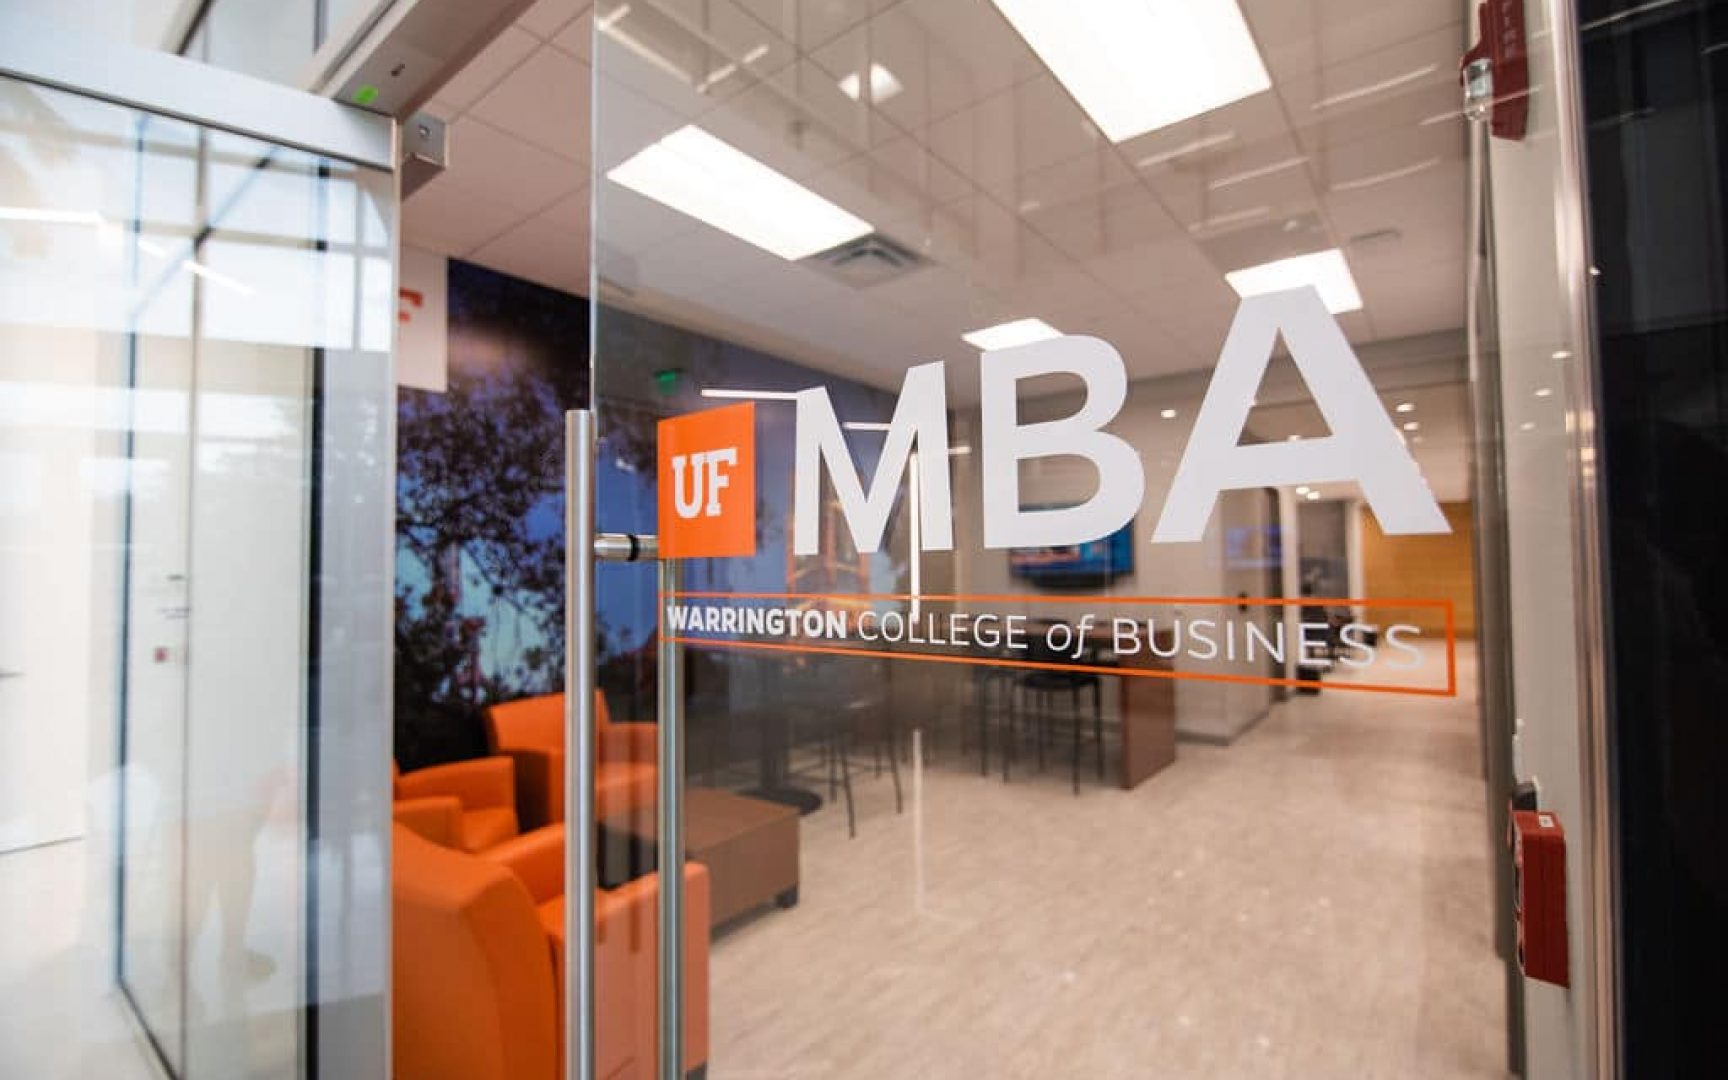 Glass door with UF MBA logo leading to the entrance of the new UF MBA South Florida location in Miramar